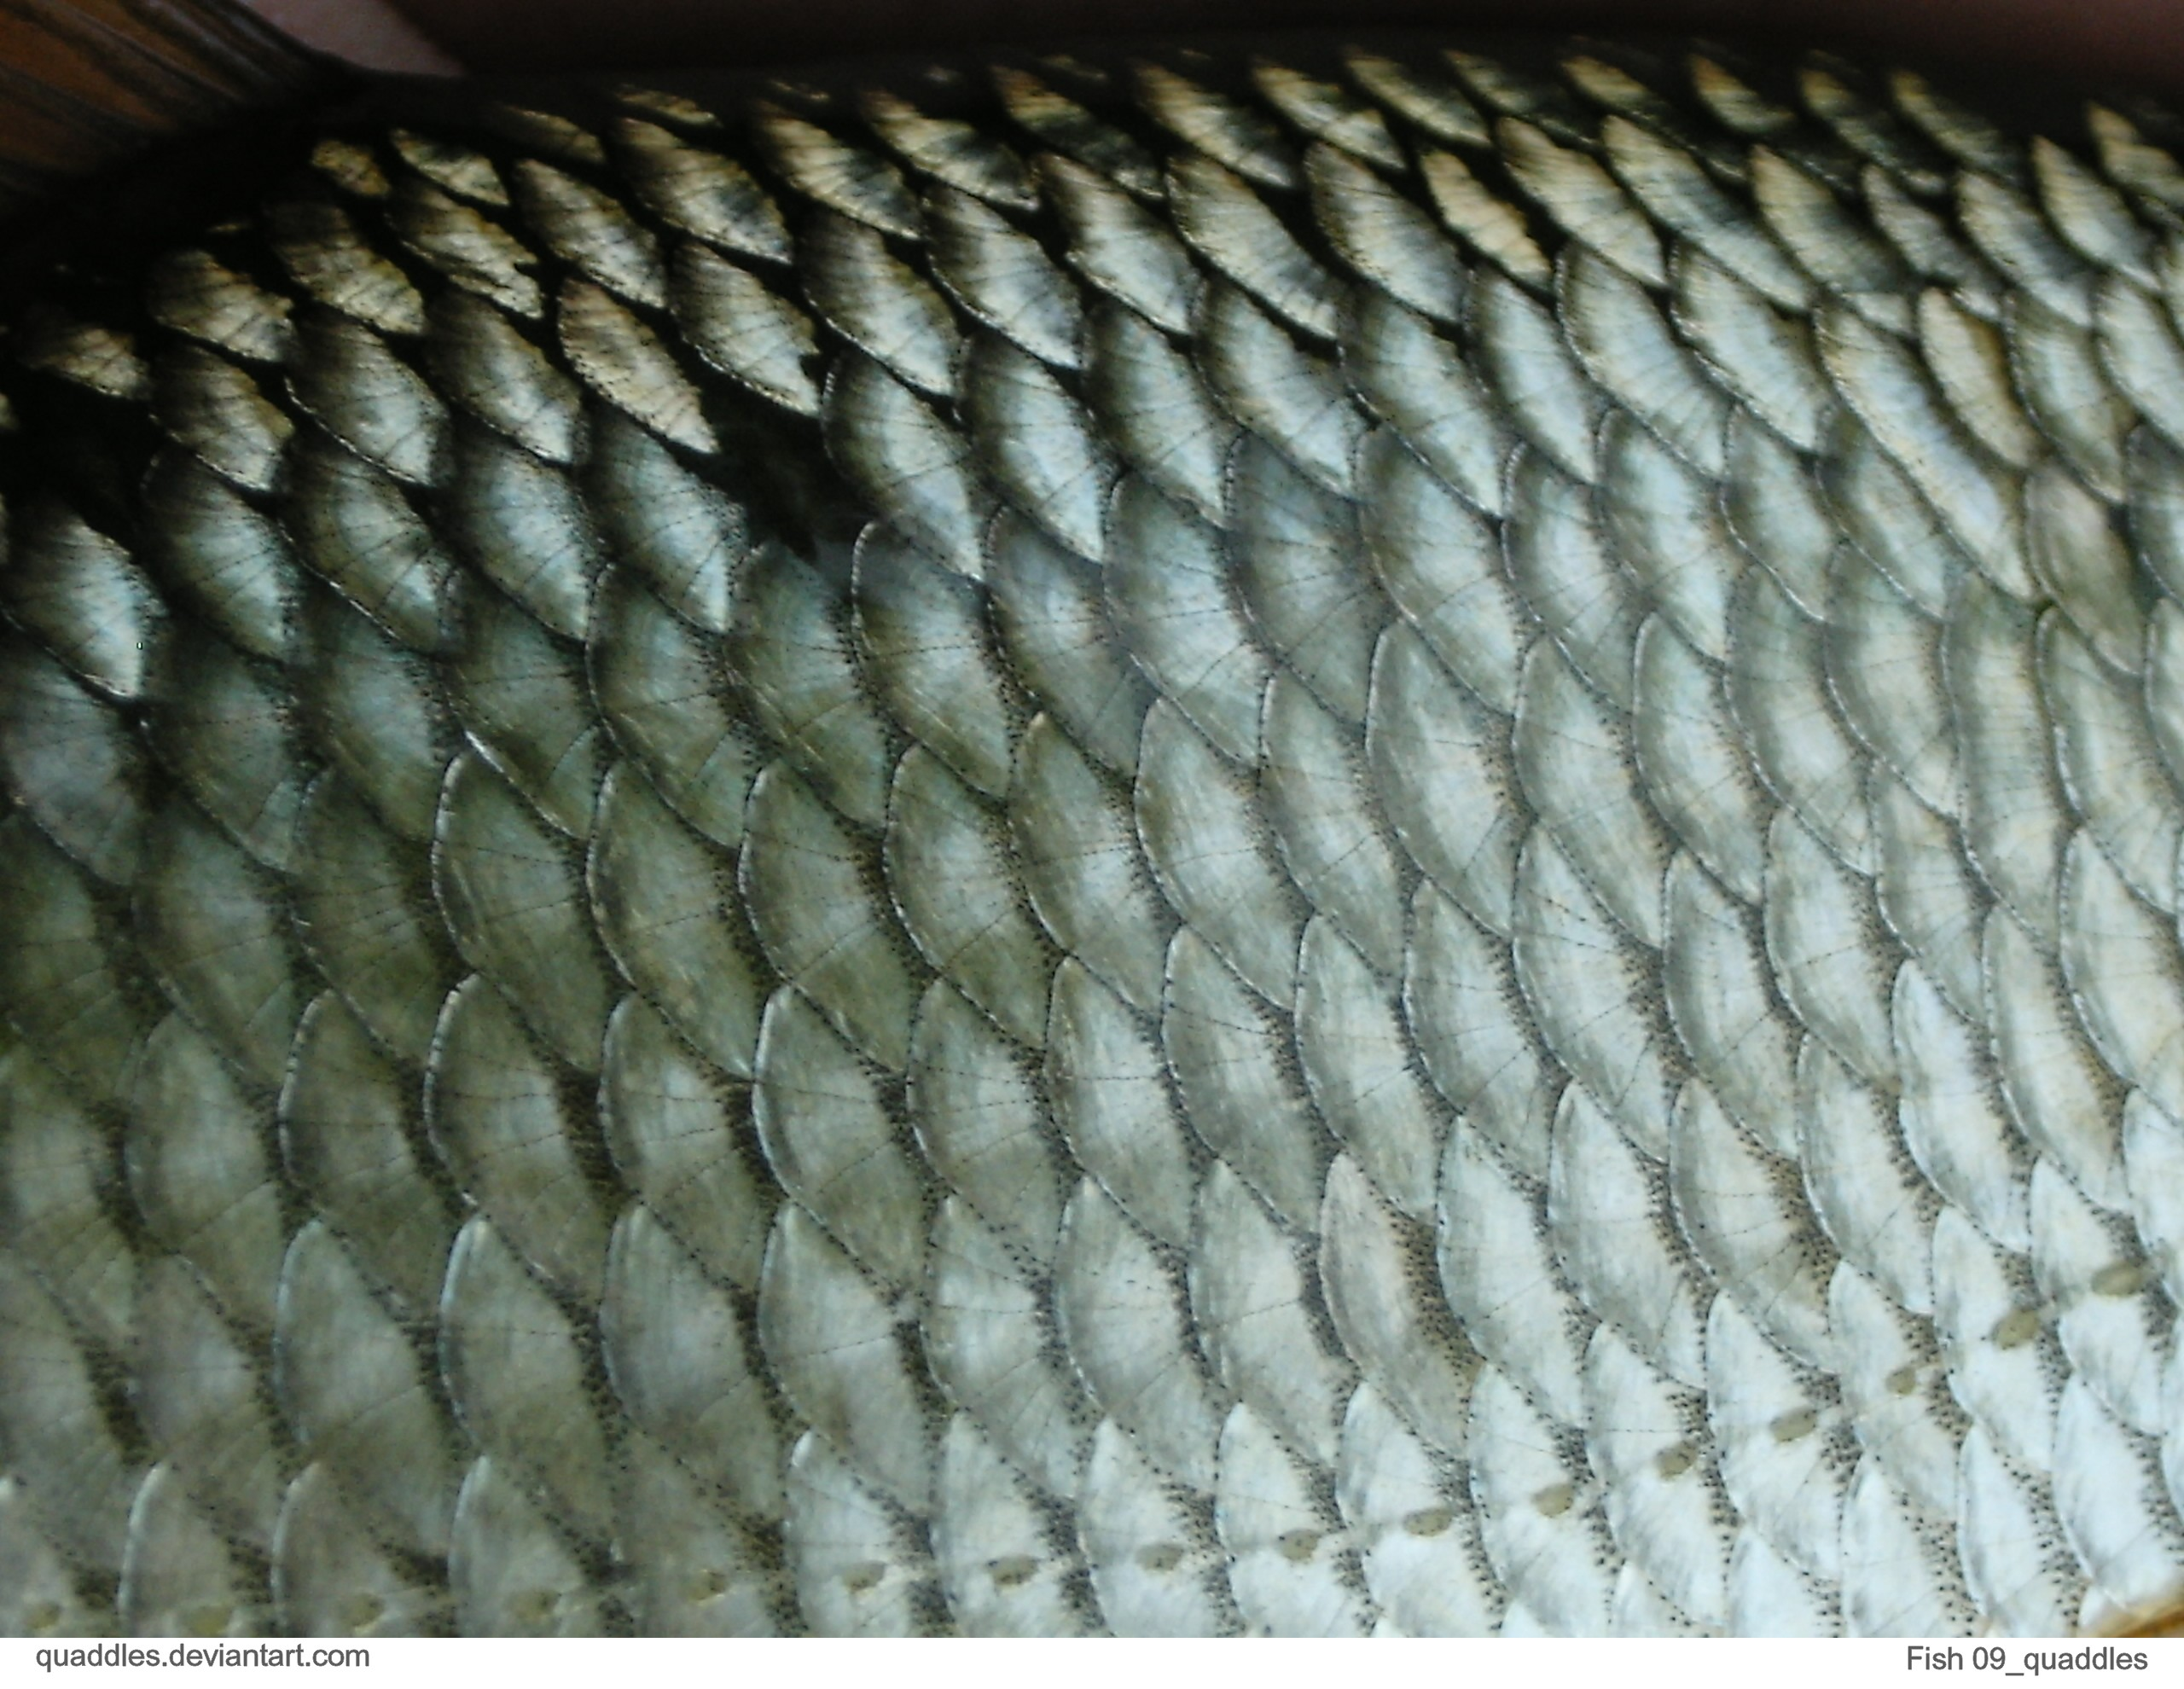 1000 images about hippocampus on pinterest for Do all fish have scales